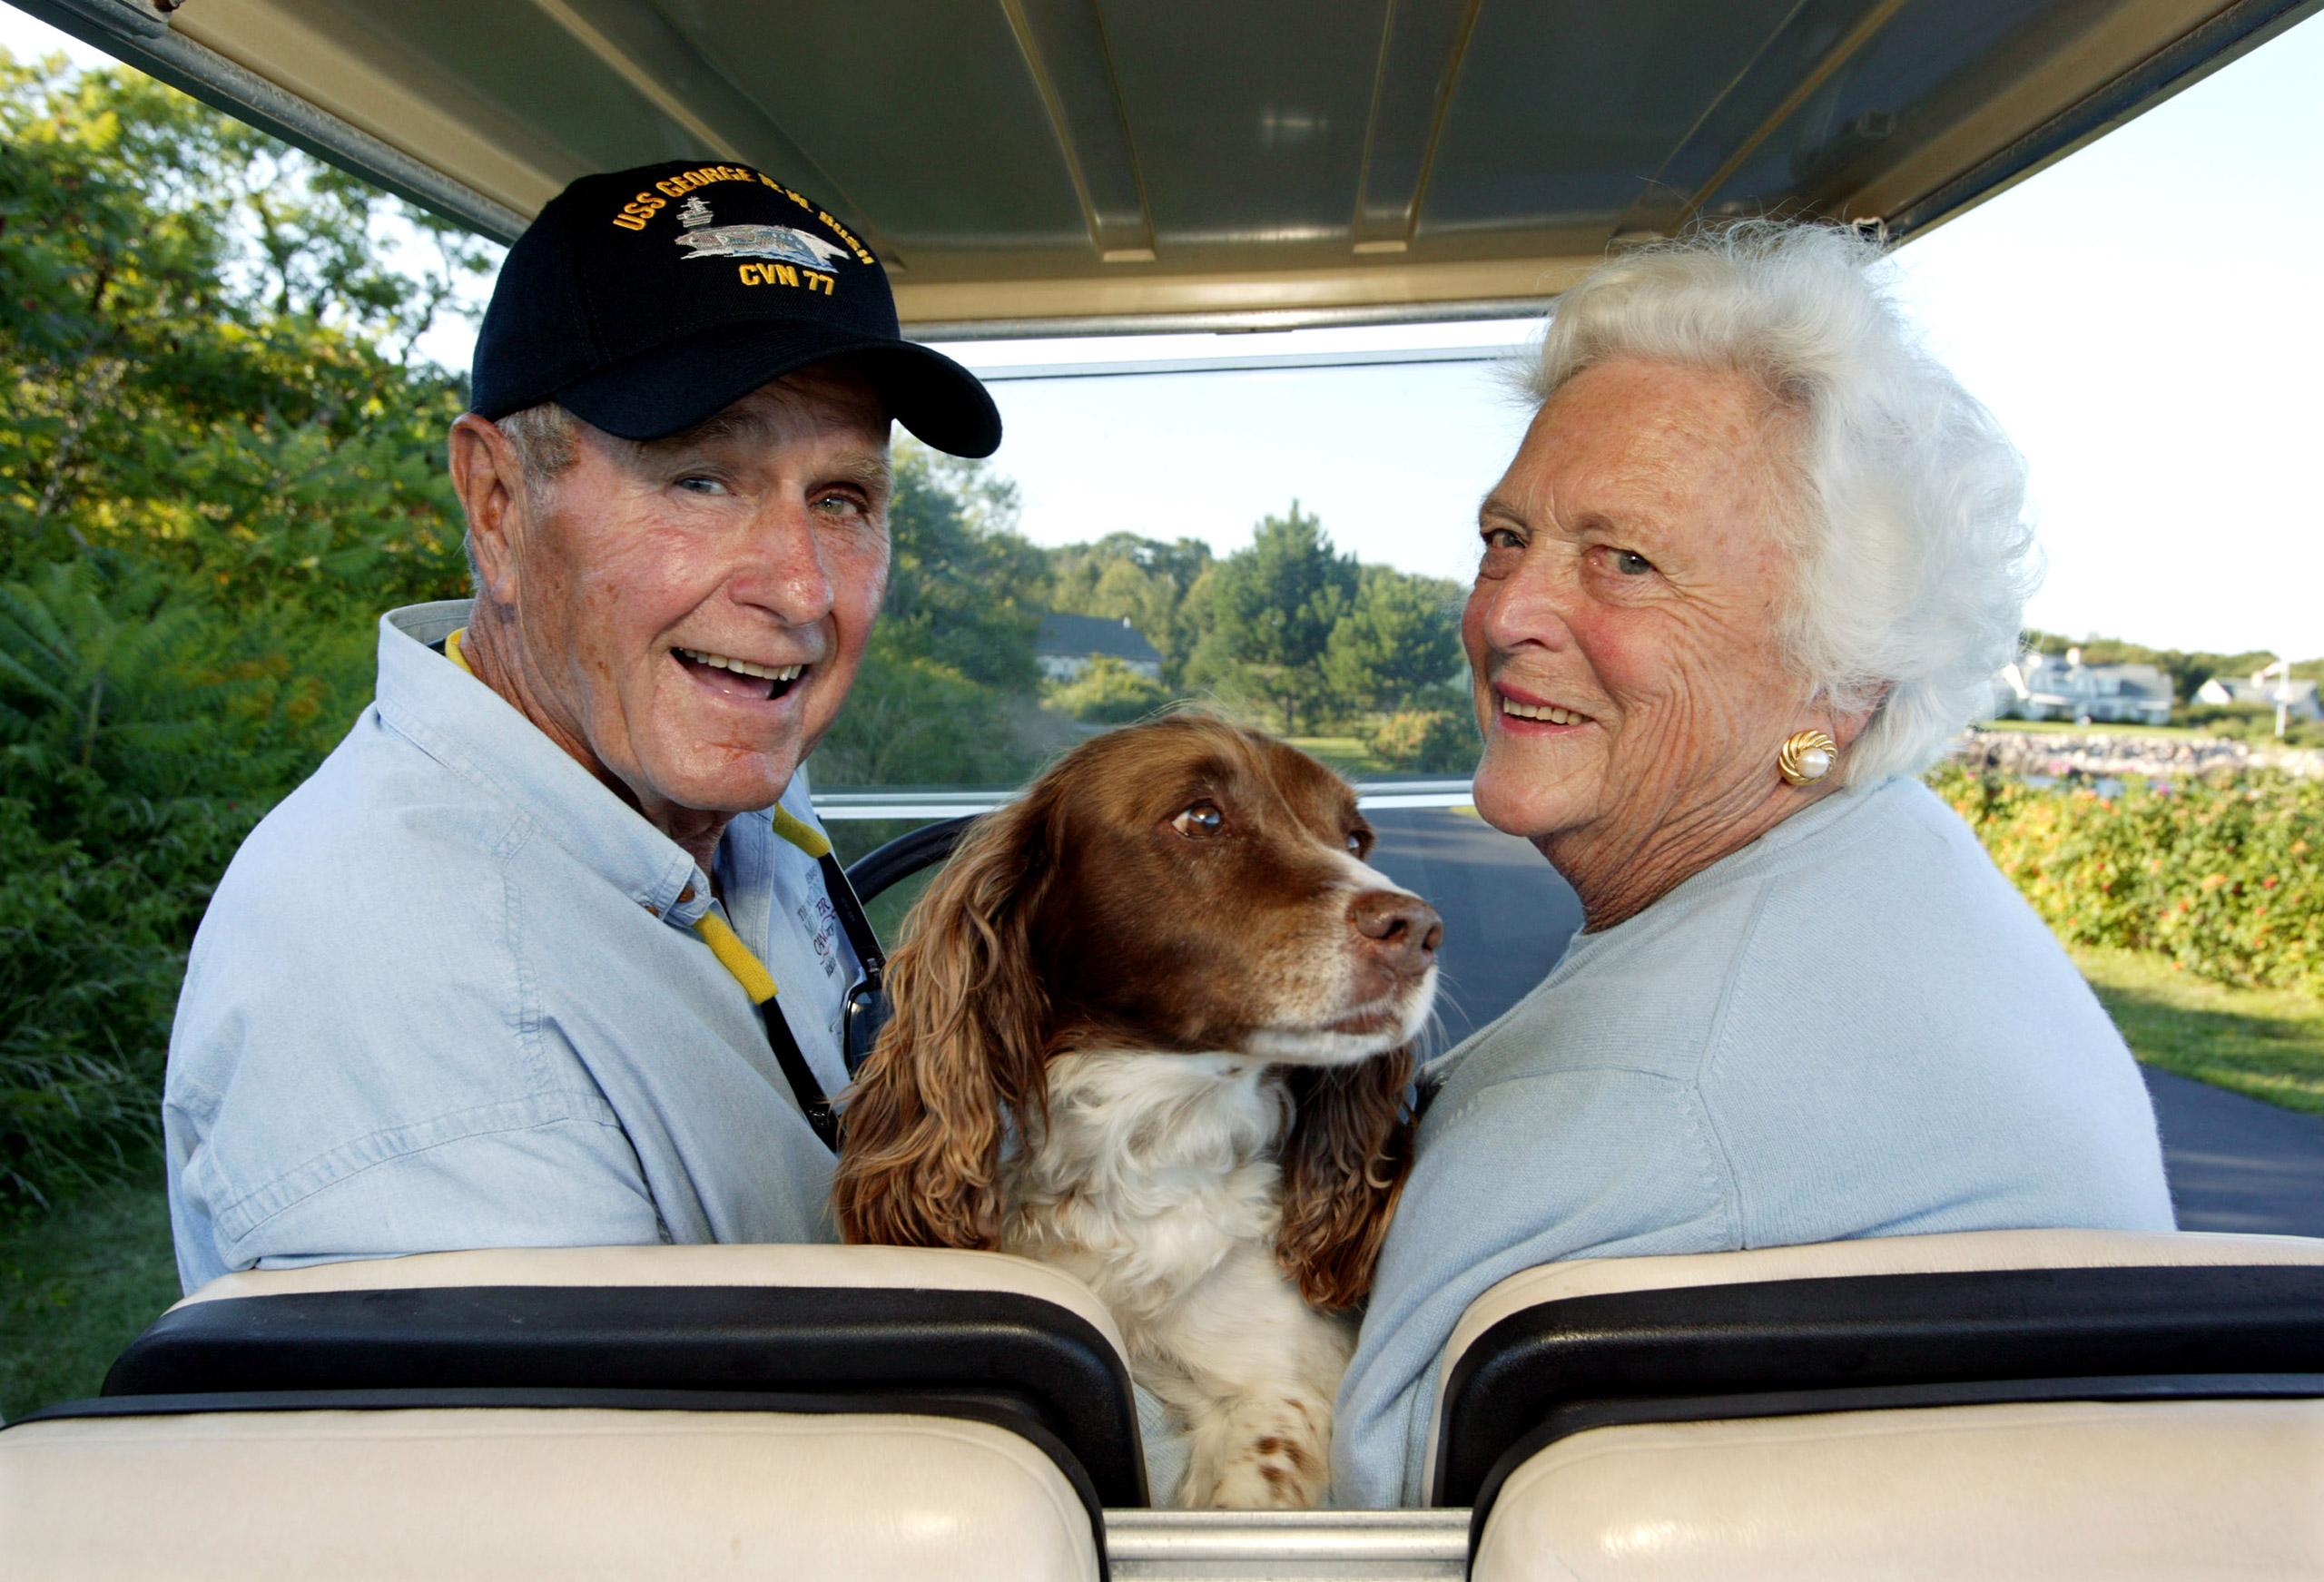 Former President George H.W. Bush and wife, Barbara Bush, cruising around in the back of a golf cart with their dog Millie at their home at Walker's Point in Kennebunkport, ME, on Aug. 25, 2004.